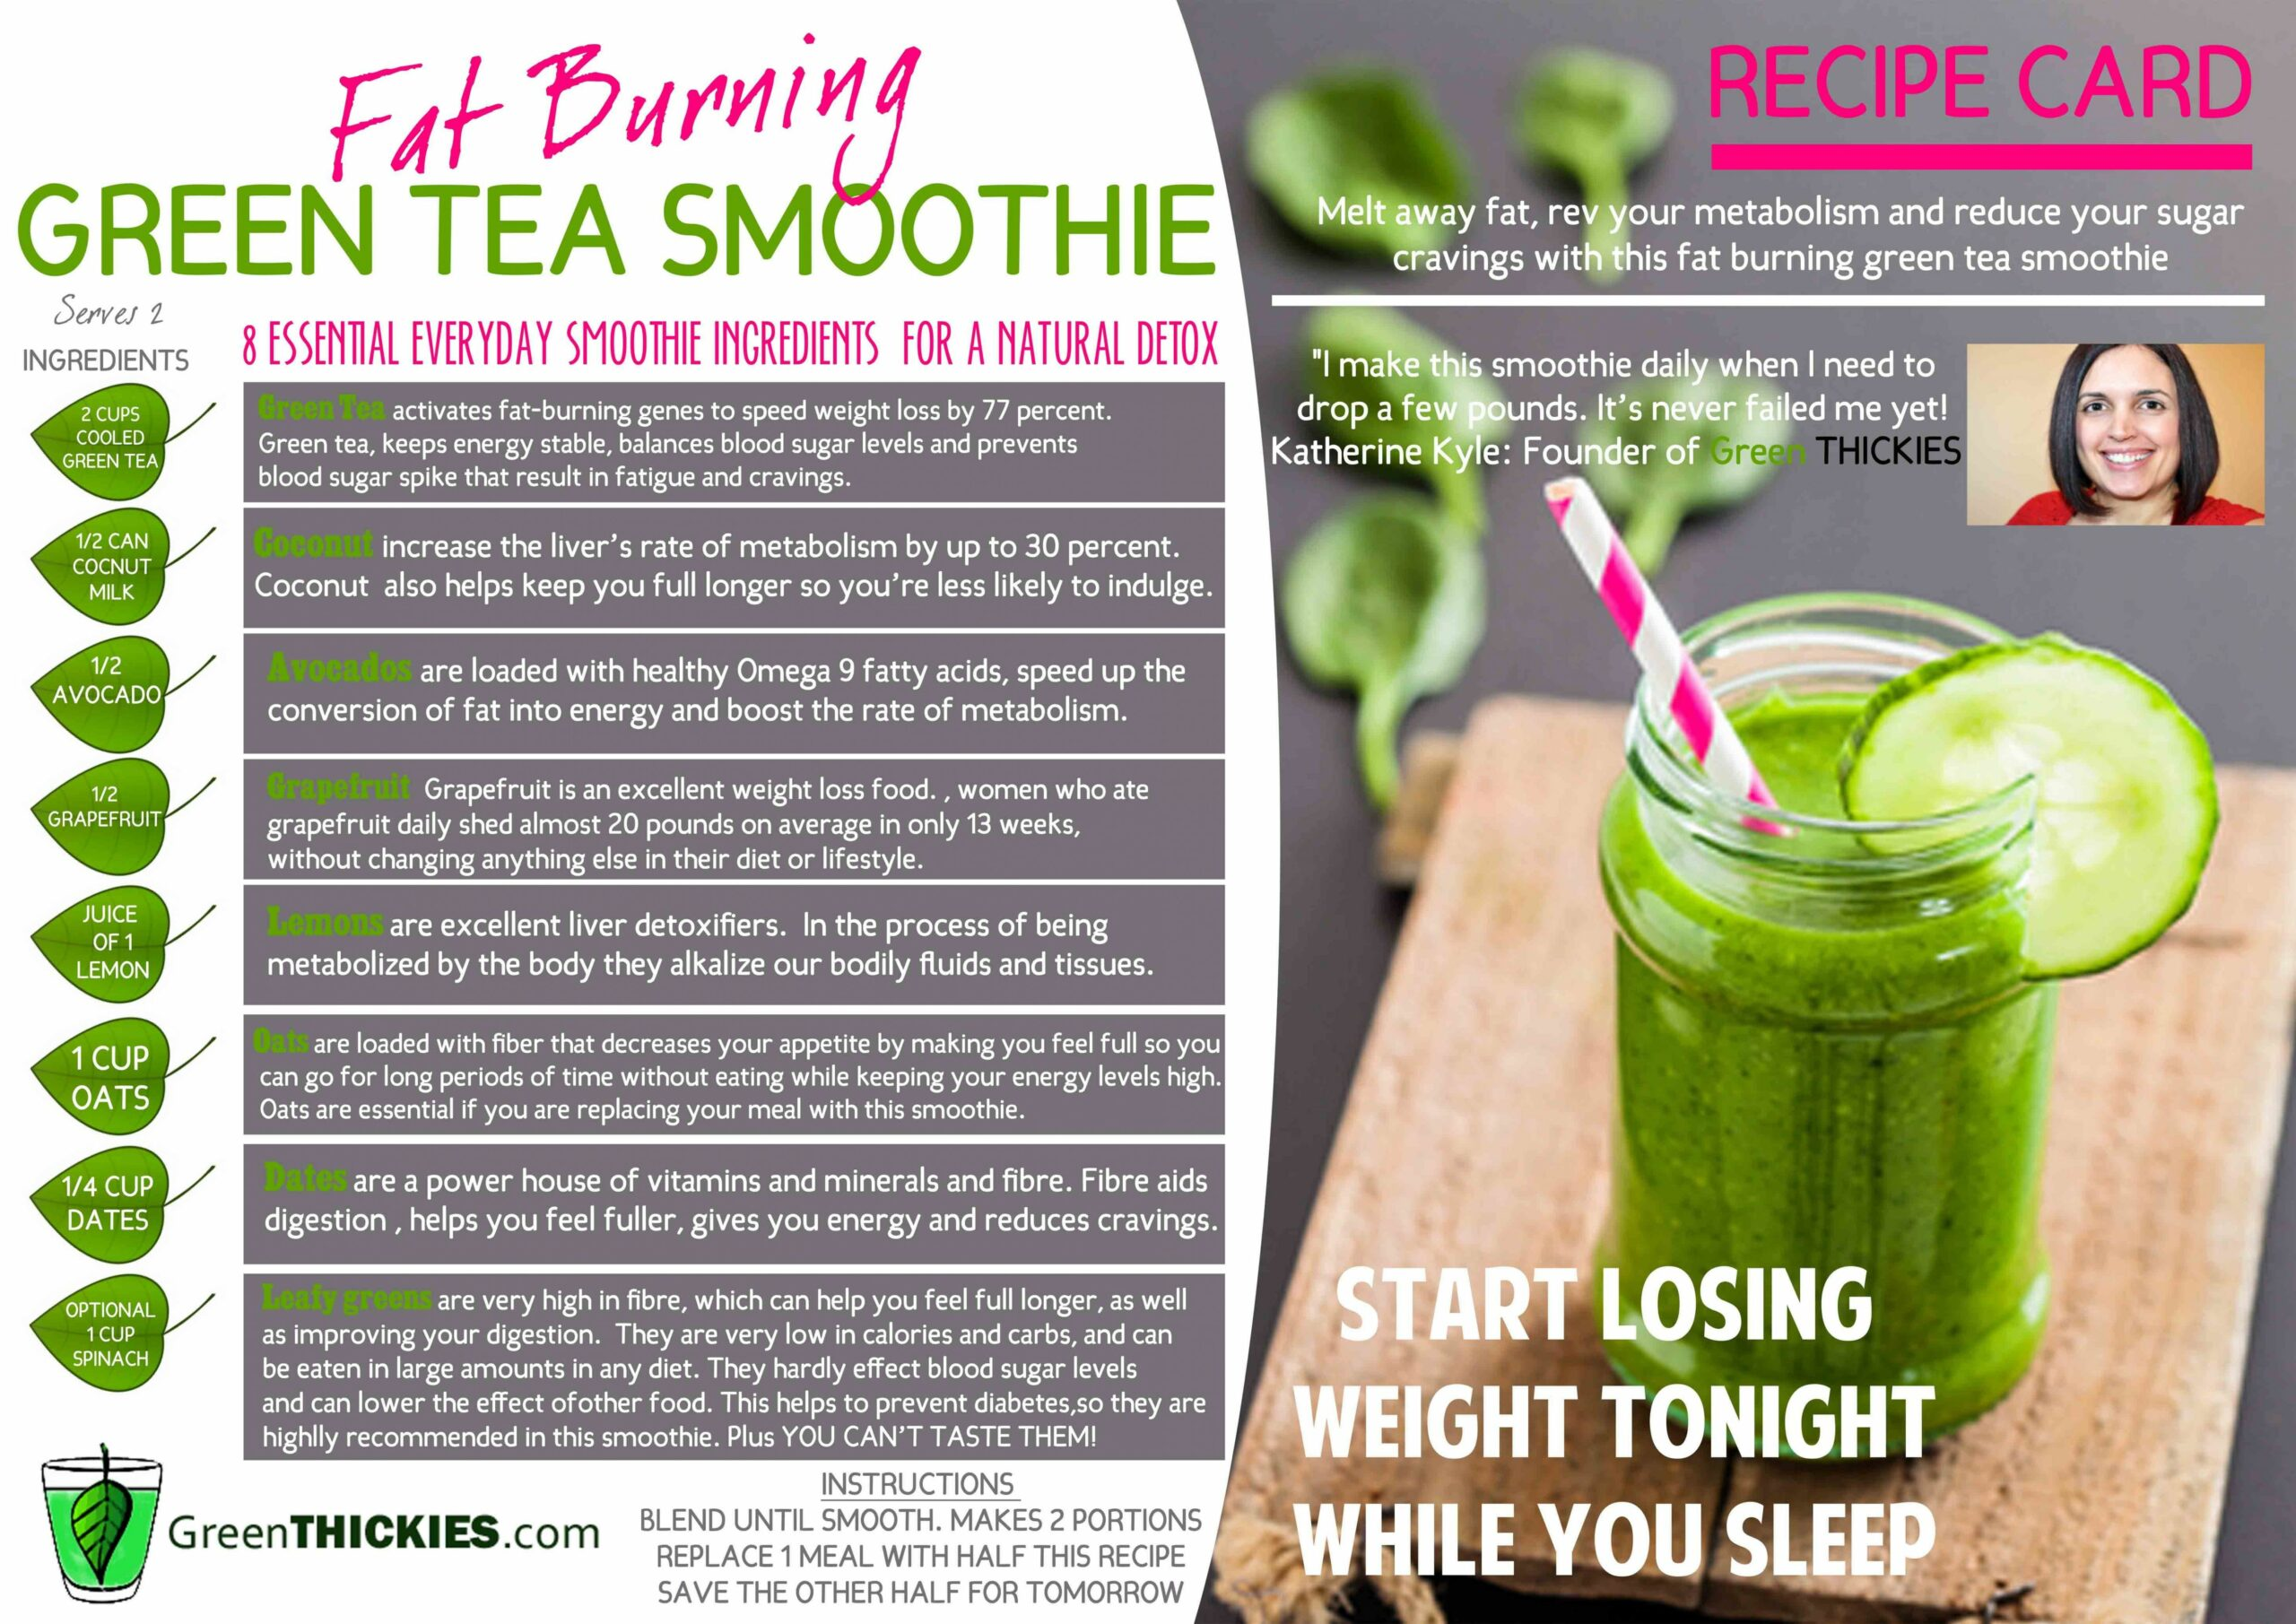 Pin on Good Eats - Smoothie Recipes For Weight Loss And Energy